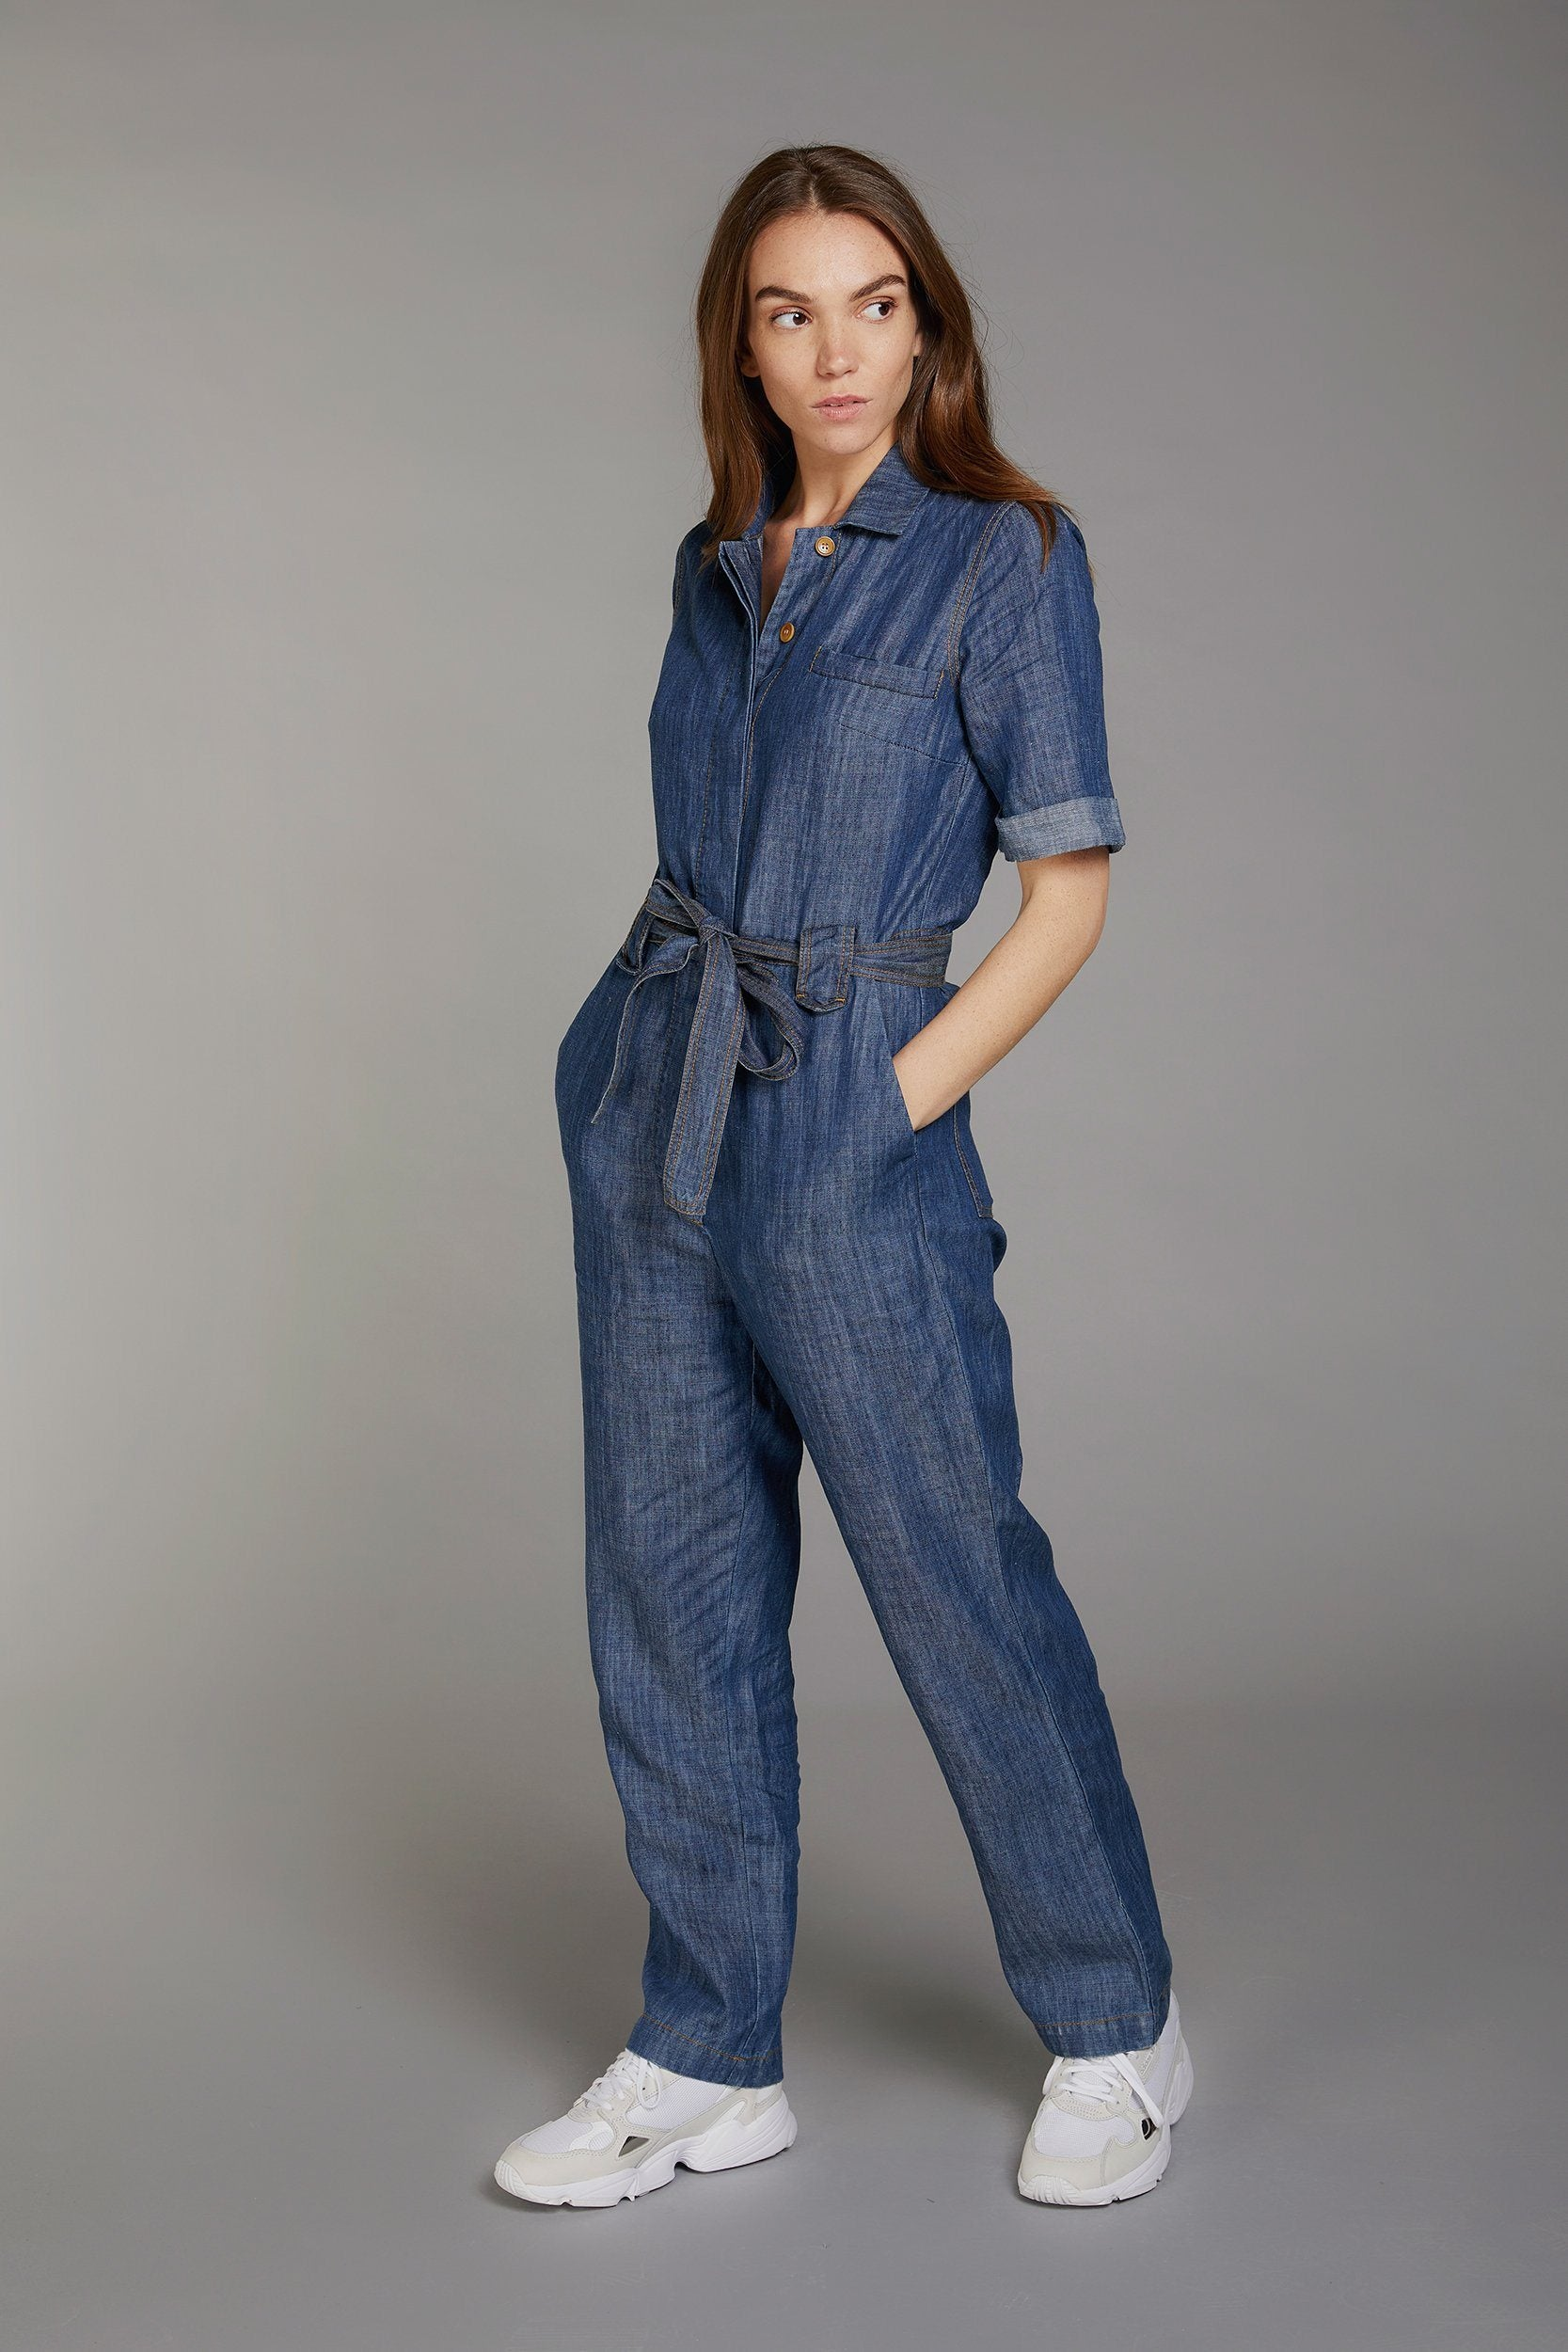 TRAPEZE Tencel Linen Jumpsuit Dark Wash - Komodo Fashion